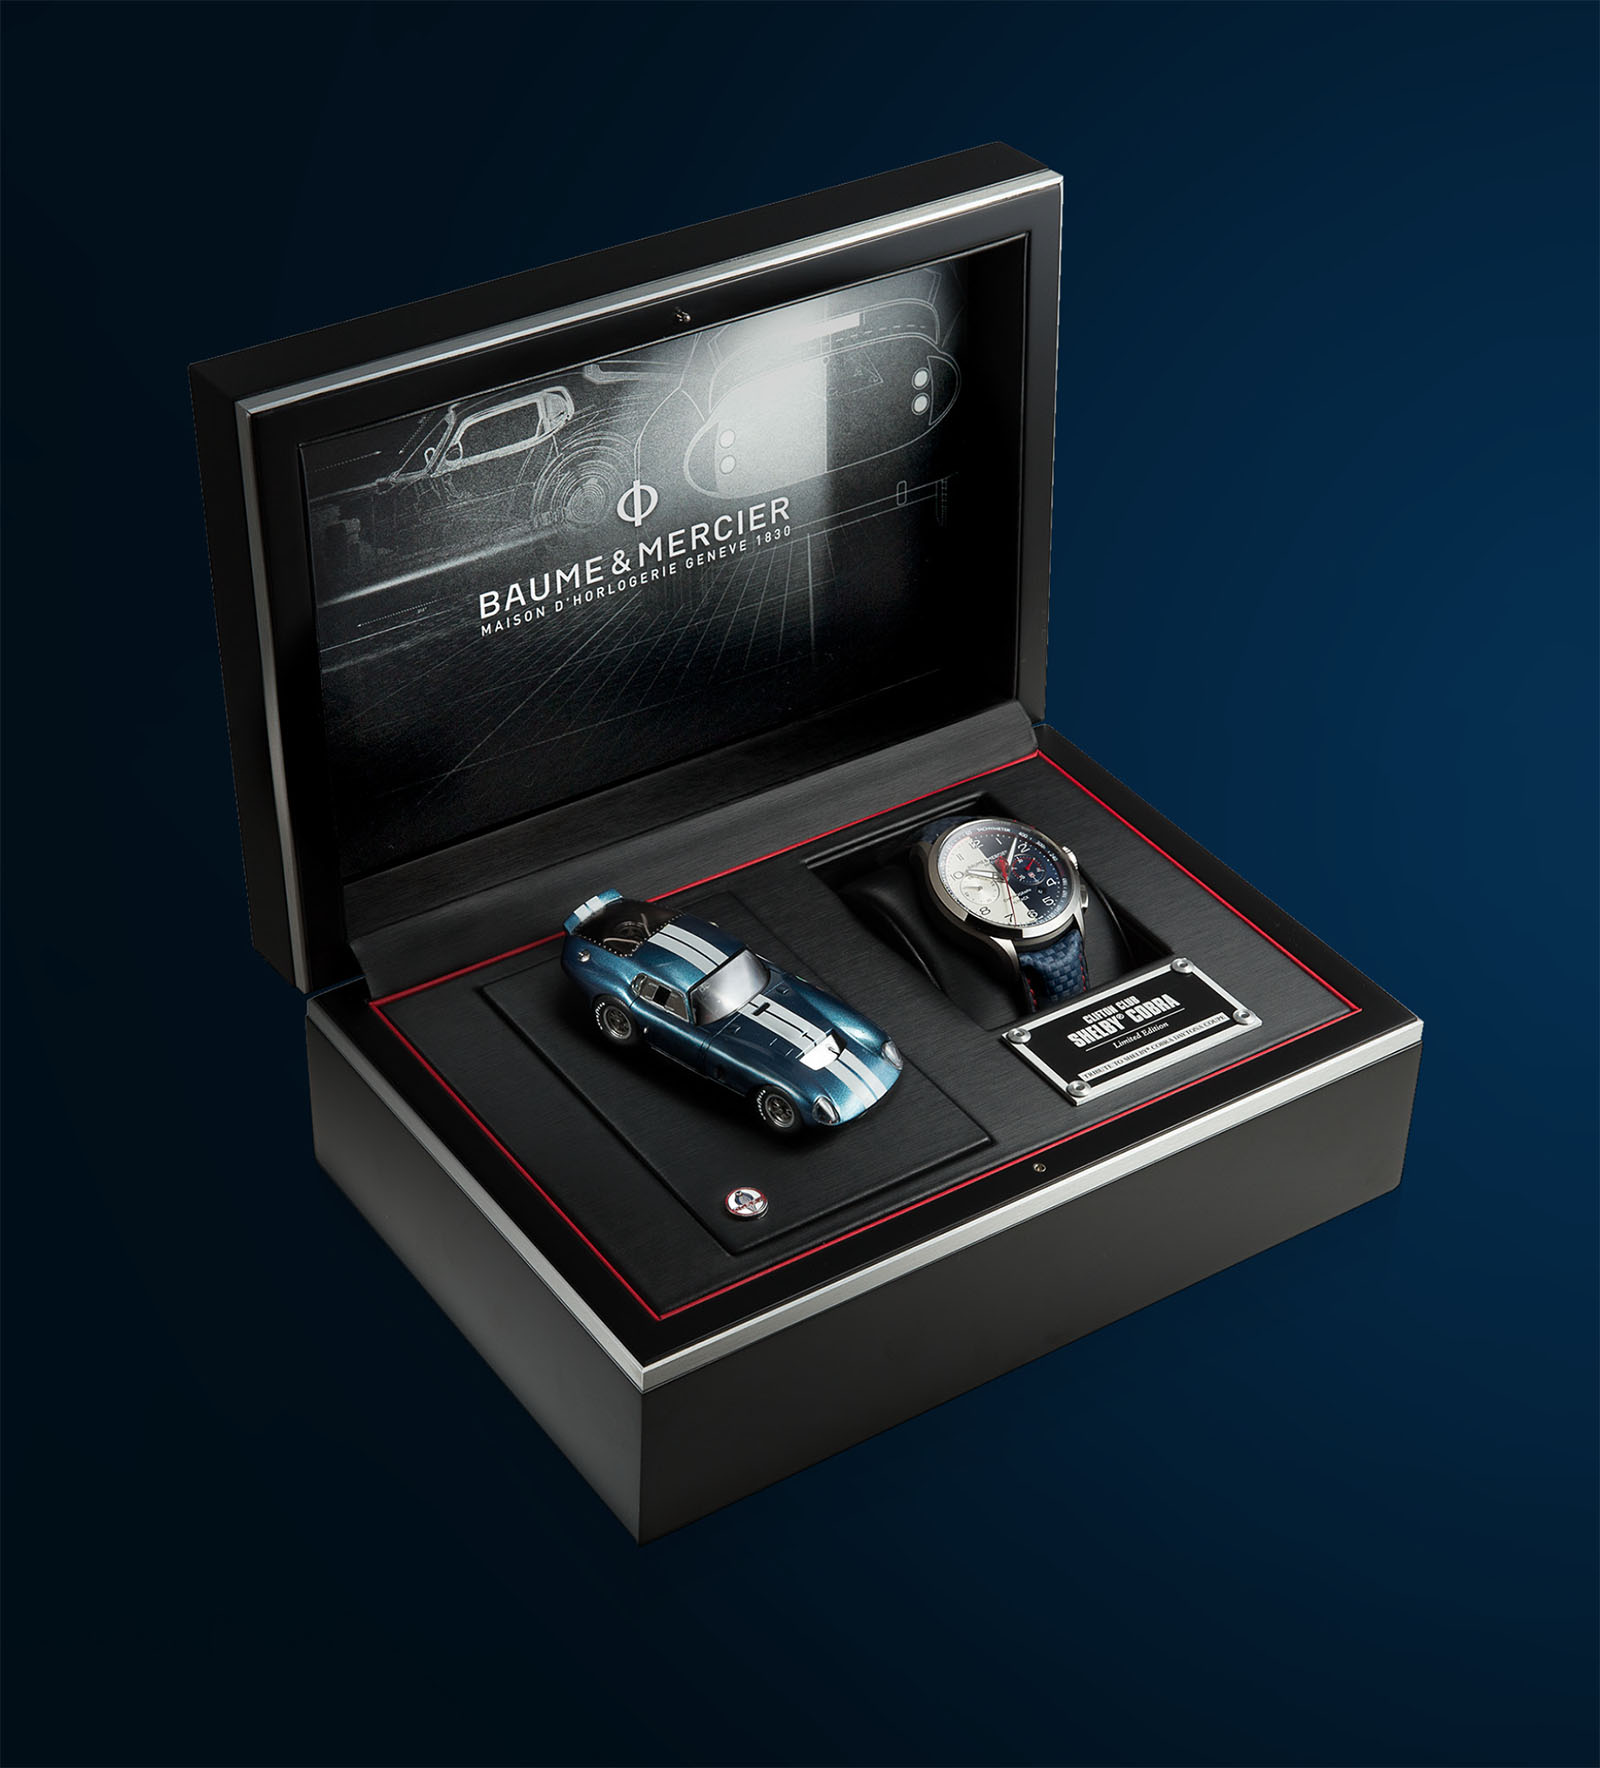 The Clifton Club Shelby Cobra arrives to its owner in elegant black and silver packaging, and includes an 1:43 scale model prized by collectors of the Shelby Cobra Daytona Coupe with an original card signed by Peter Brock